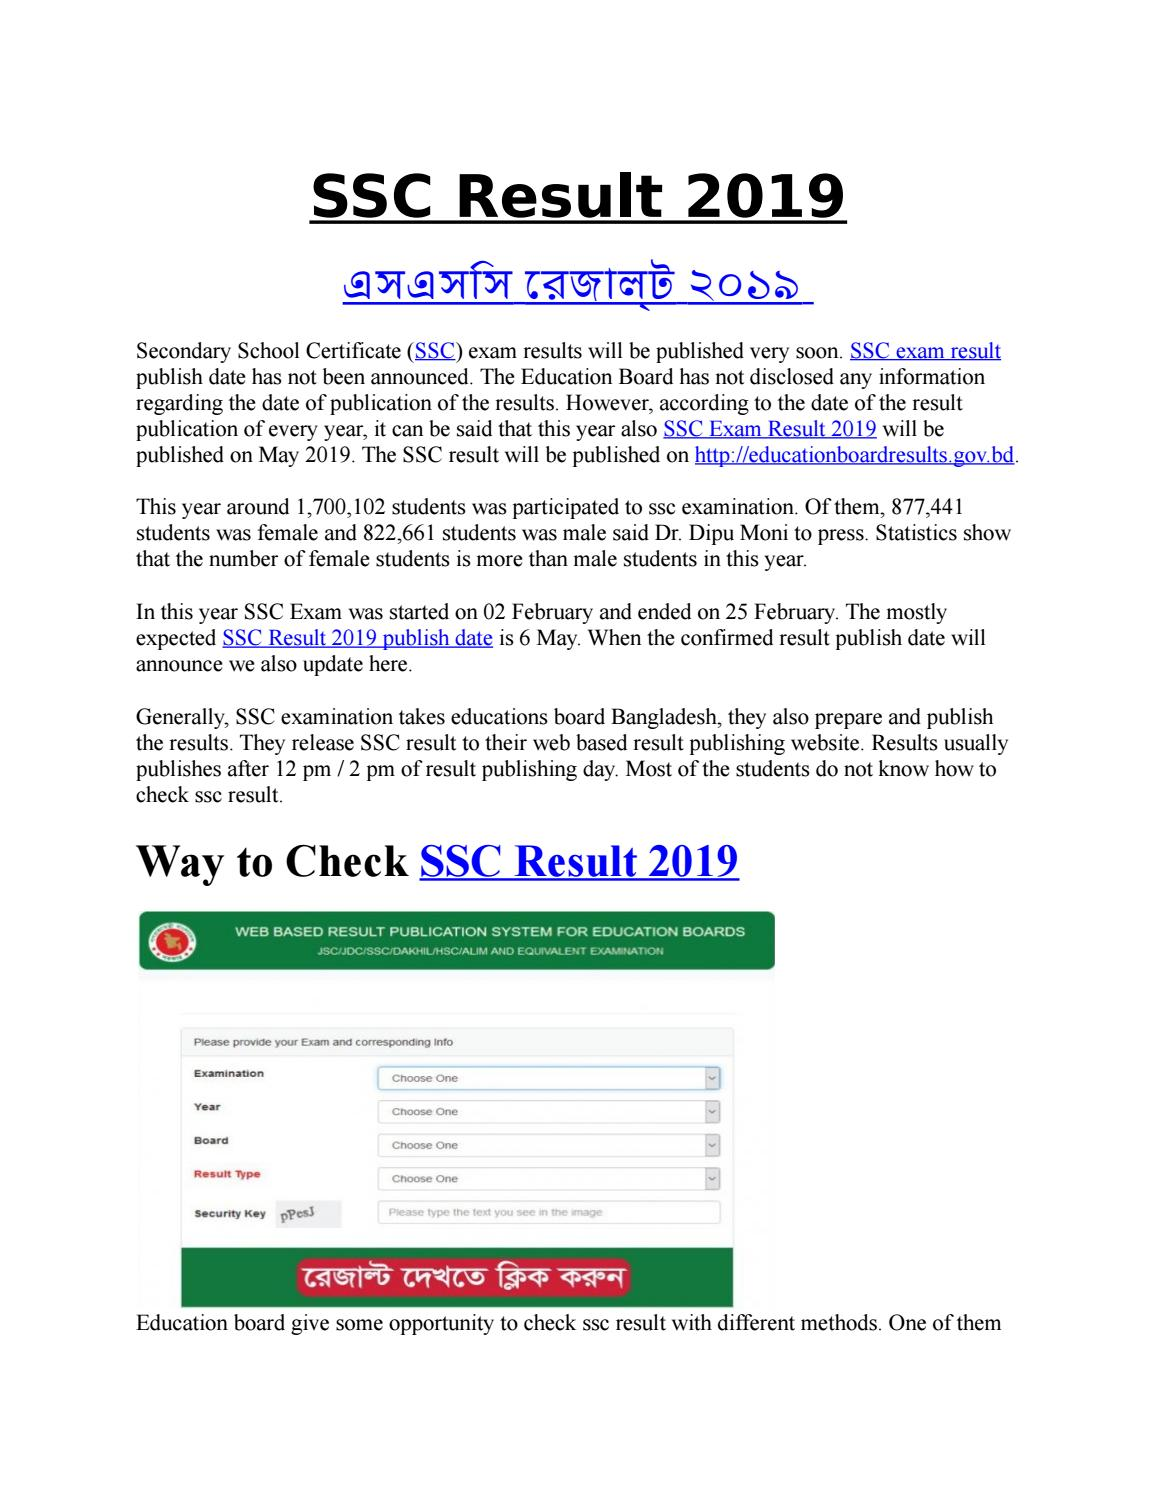 BD SSC Exam Result 2019 With Marksheet by Asif Alam - issuu